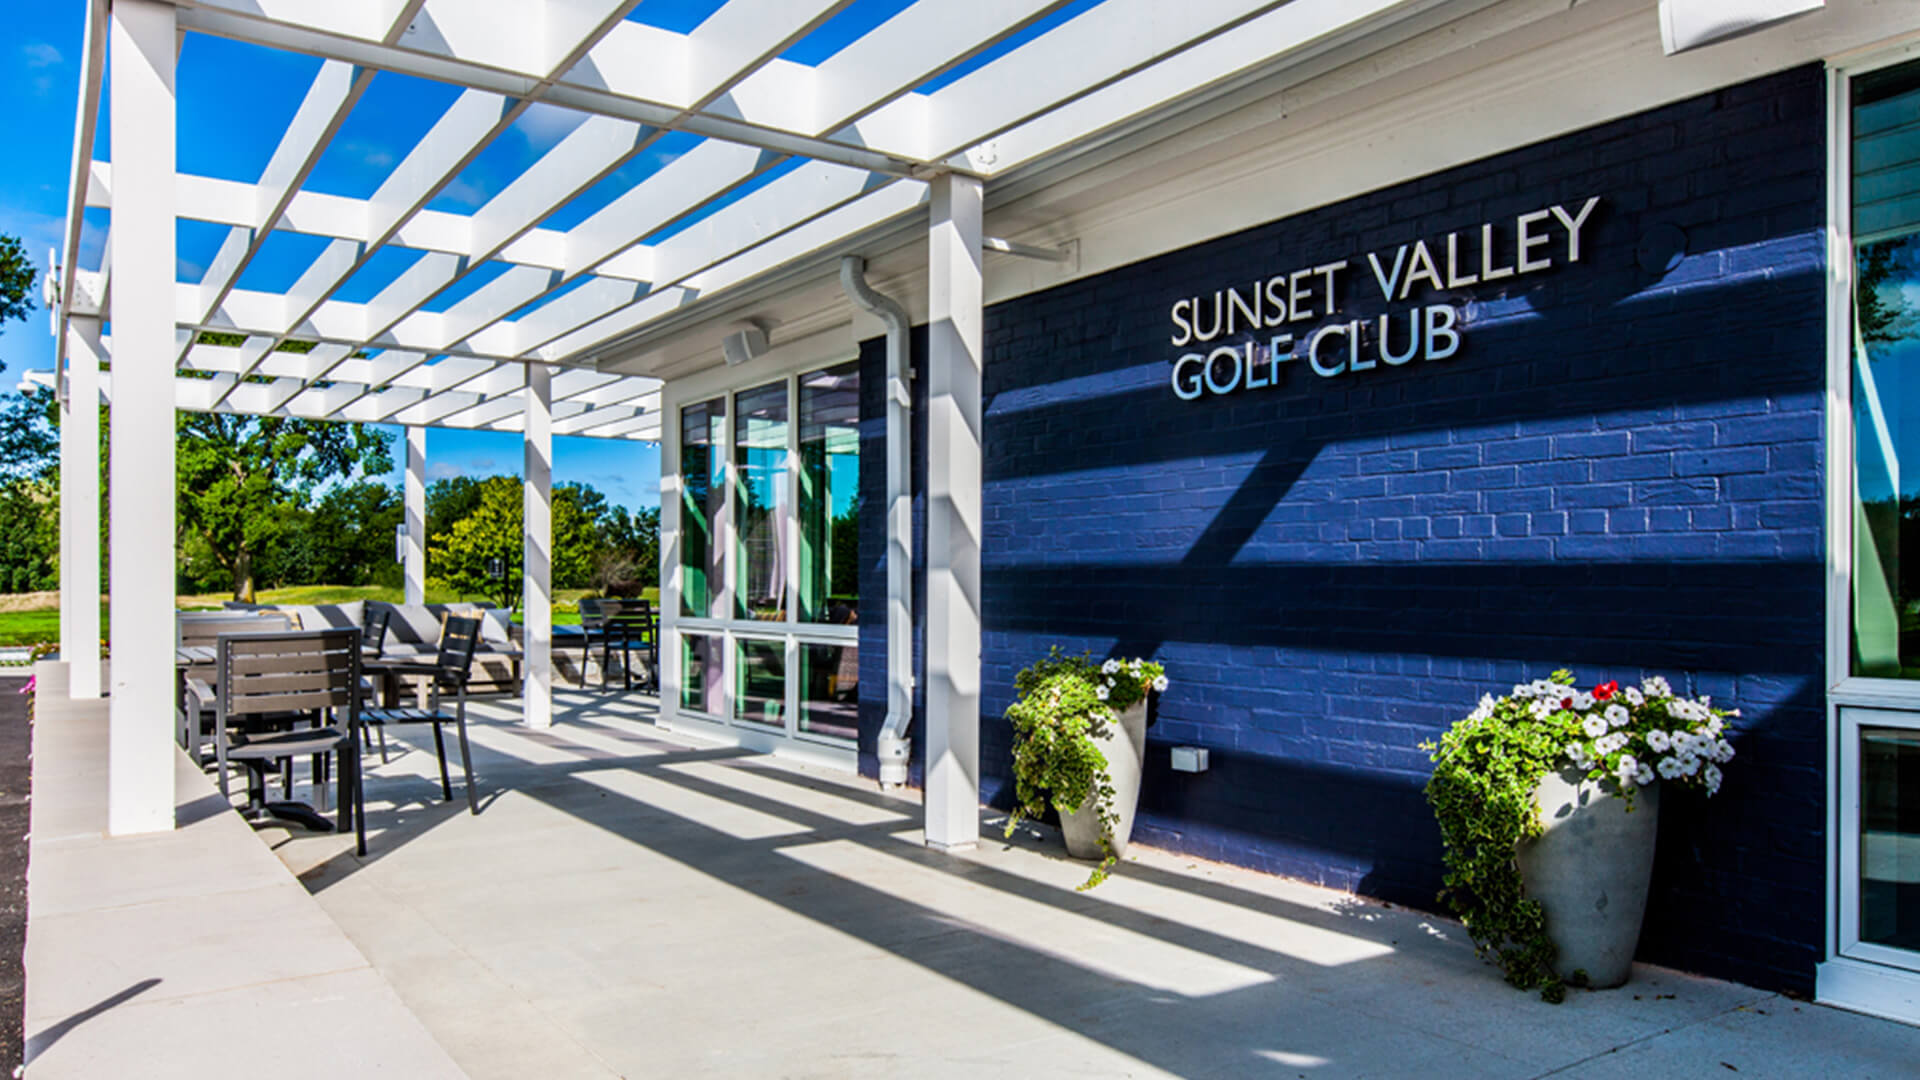 Park District of Highland Park - Sunset Valley Golf Clubhouse